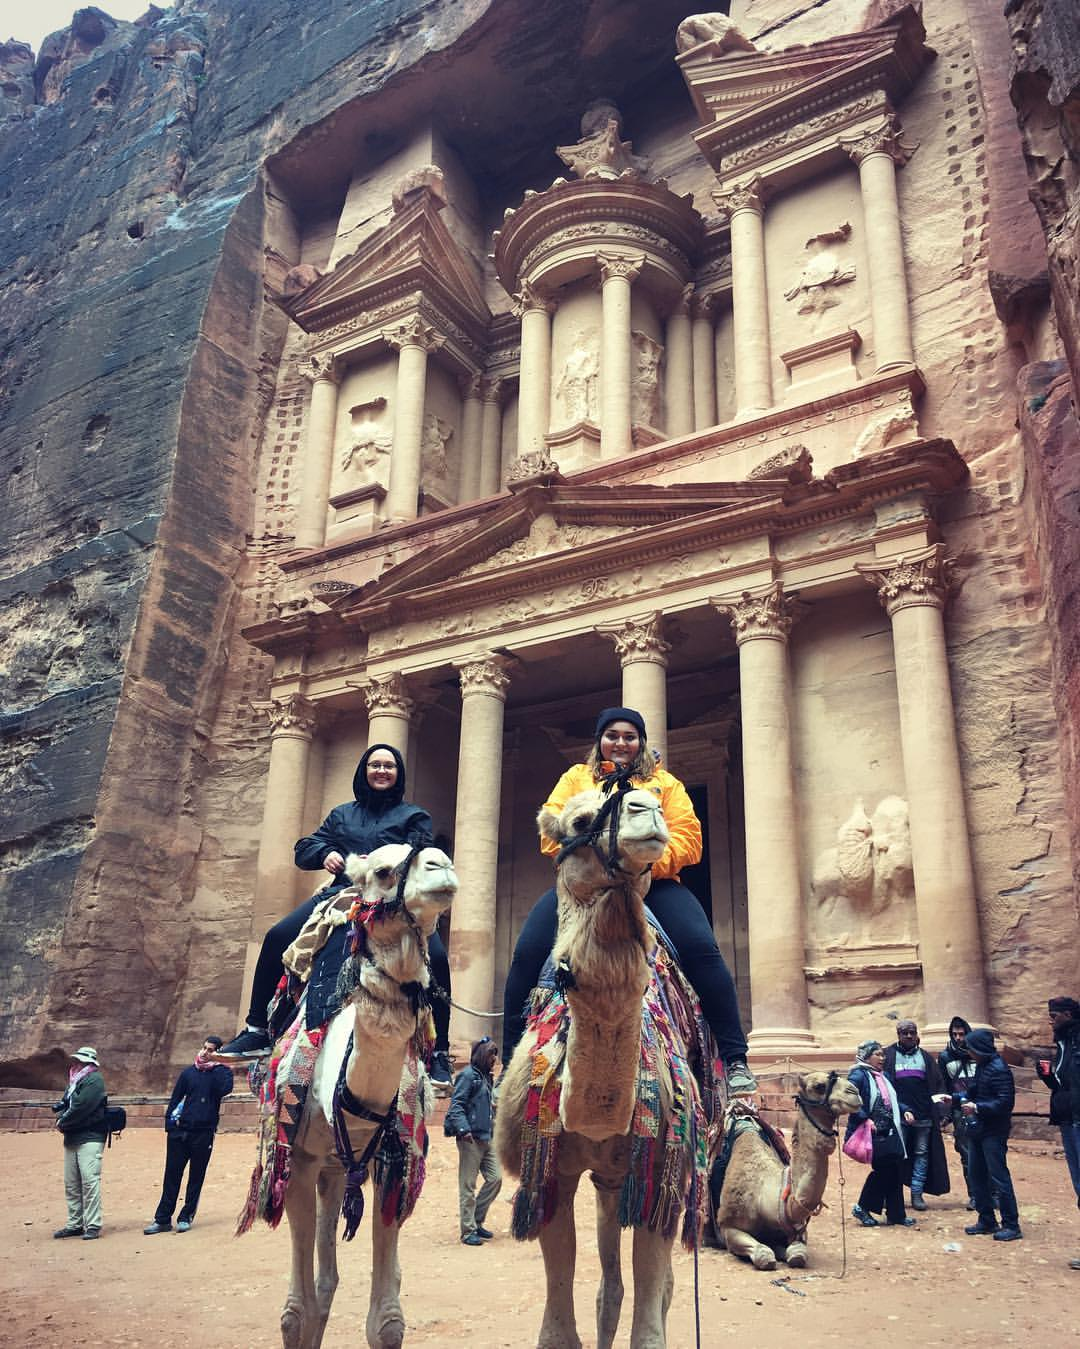 15 SPECTACULAR PICS FROM PETRA